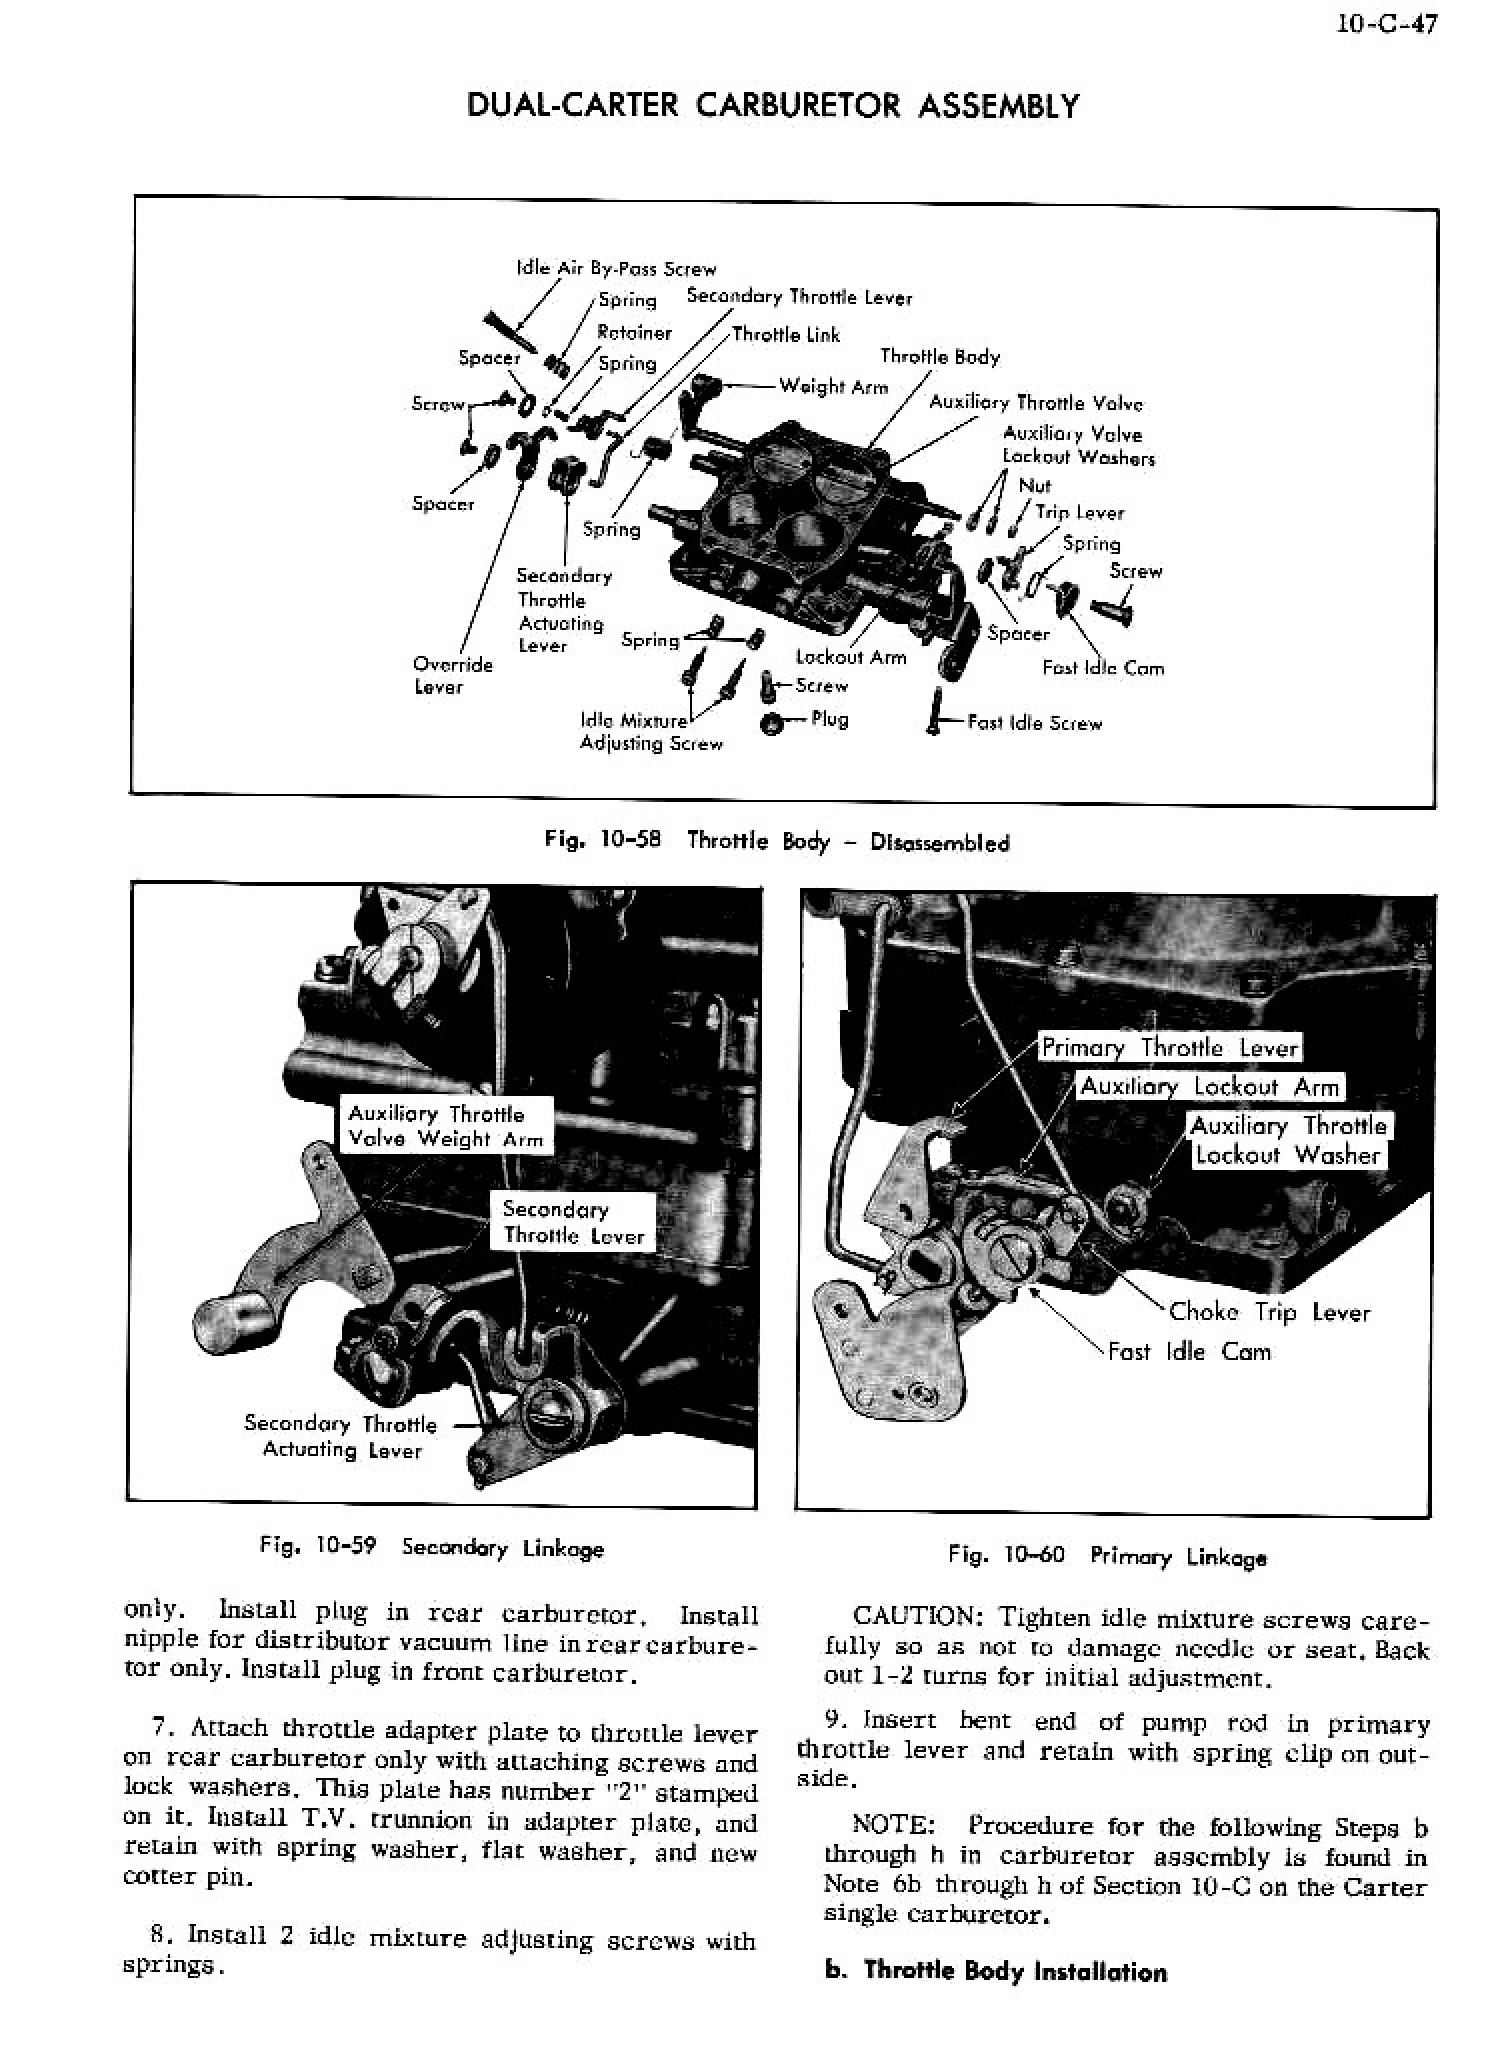 1956 Cadillac Shop Manual- Engine Fuel and Exhaust Page 47